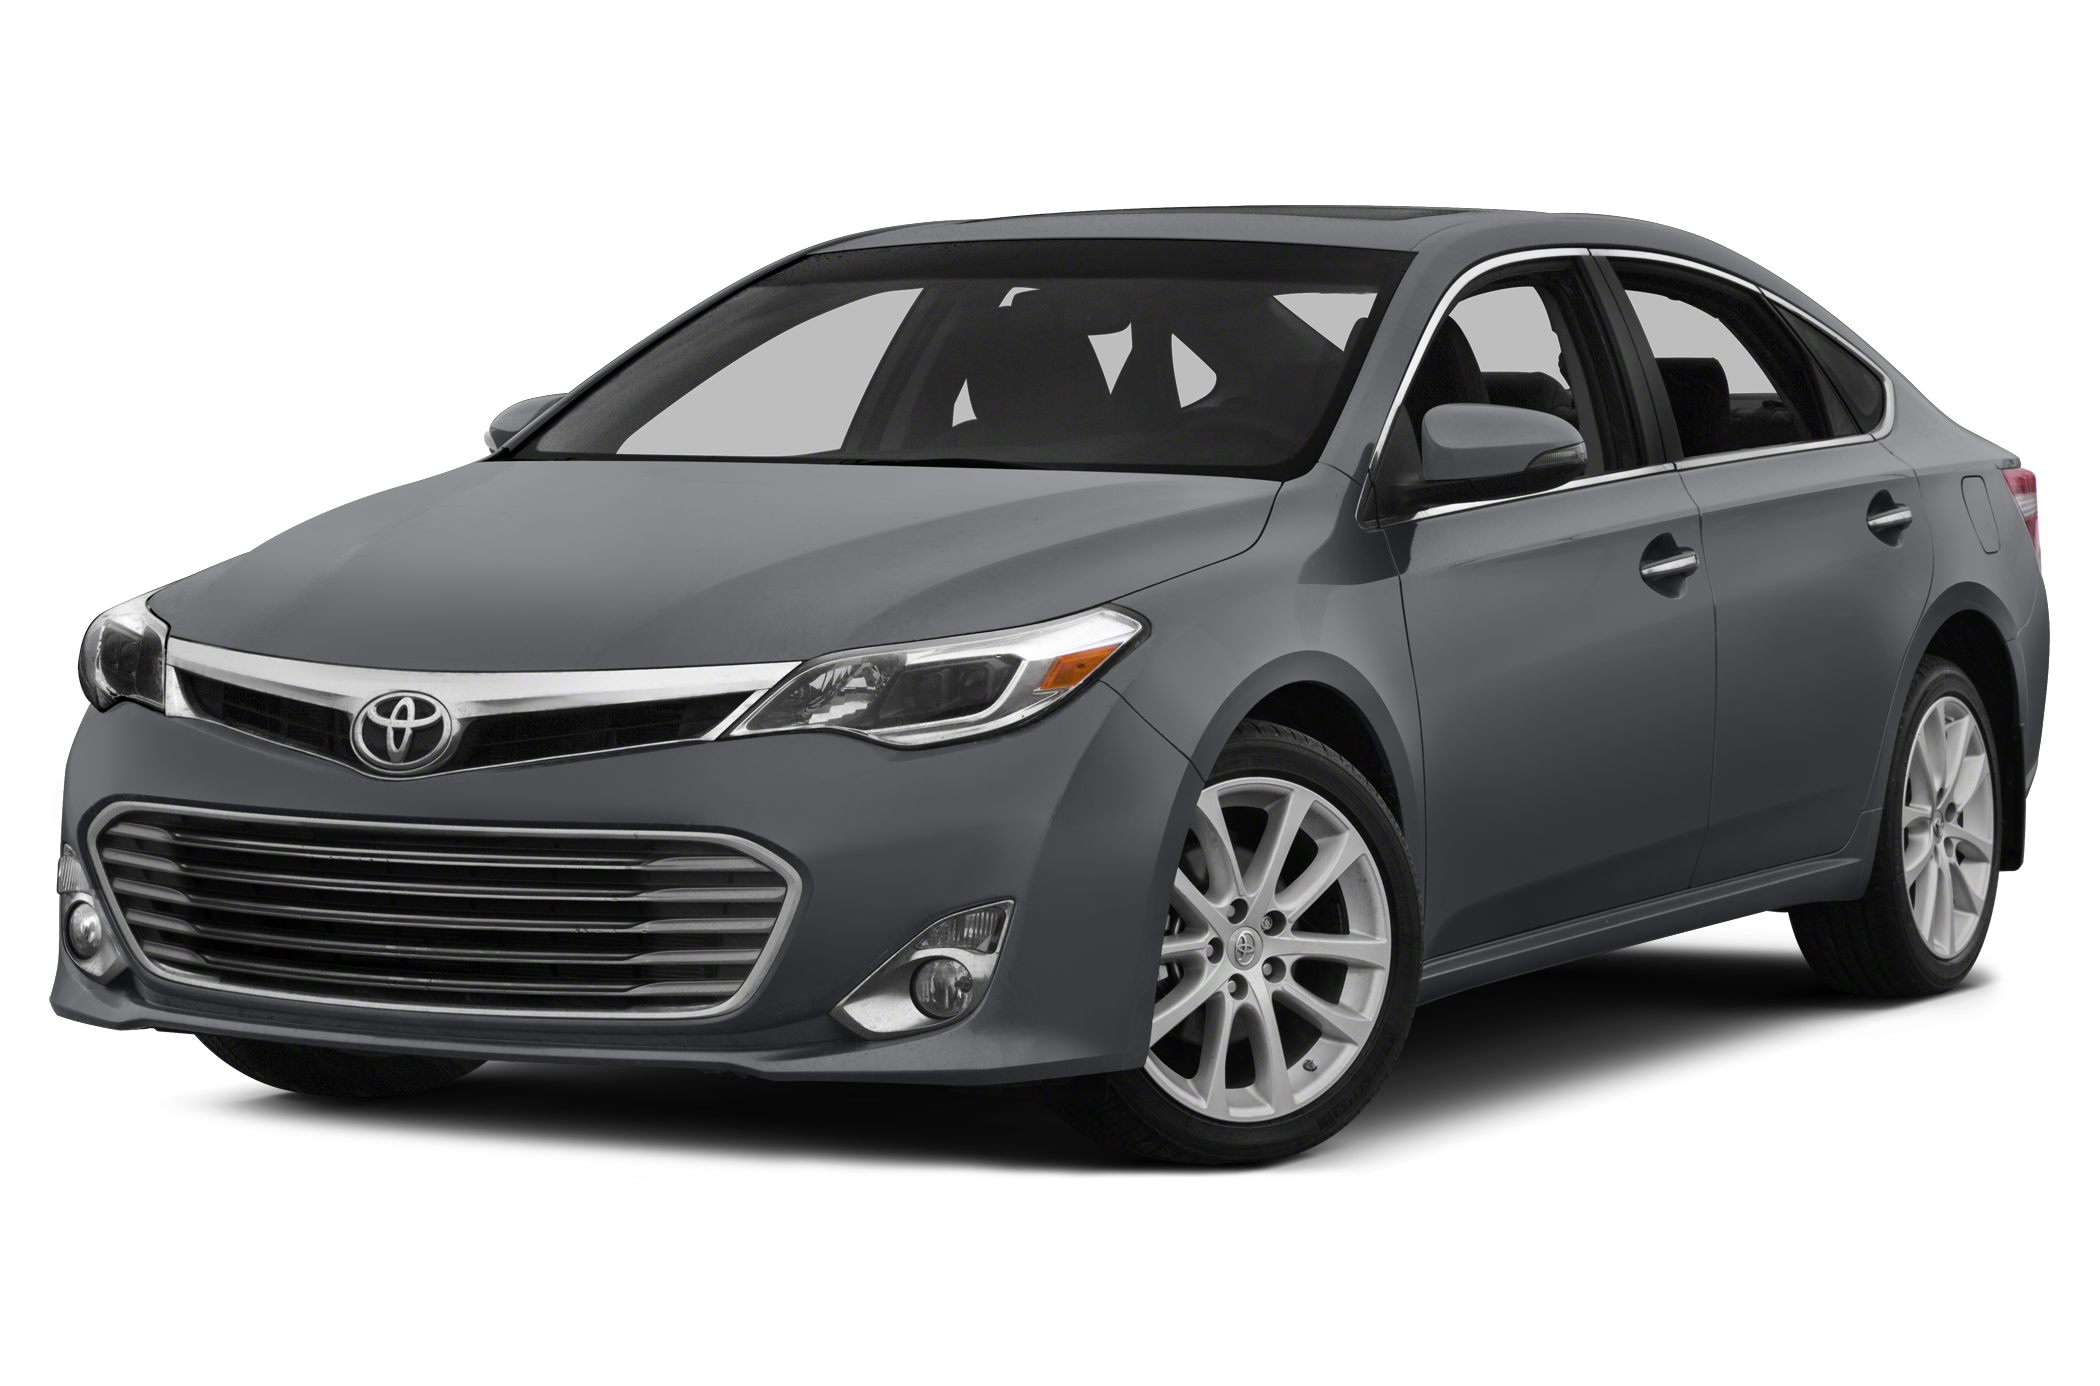 2015 Toyota Avalon XLE Touring Heated Seats Sunroof NAV Dual Zone AC CD Player Back-Up Camer